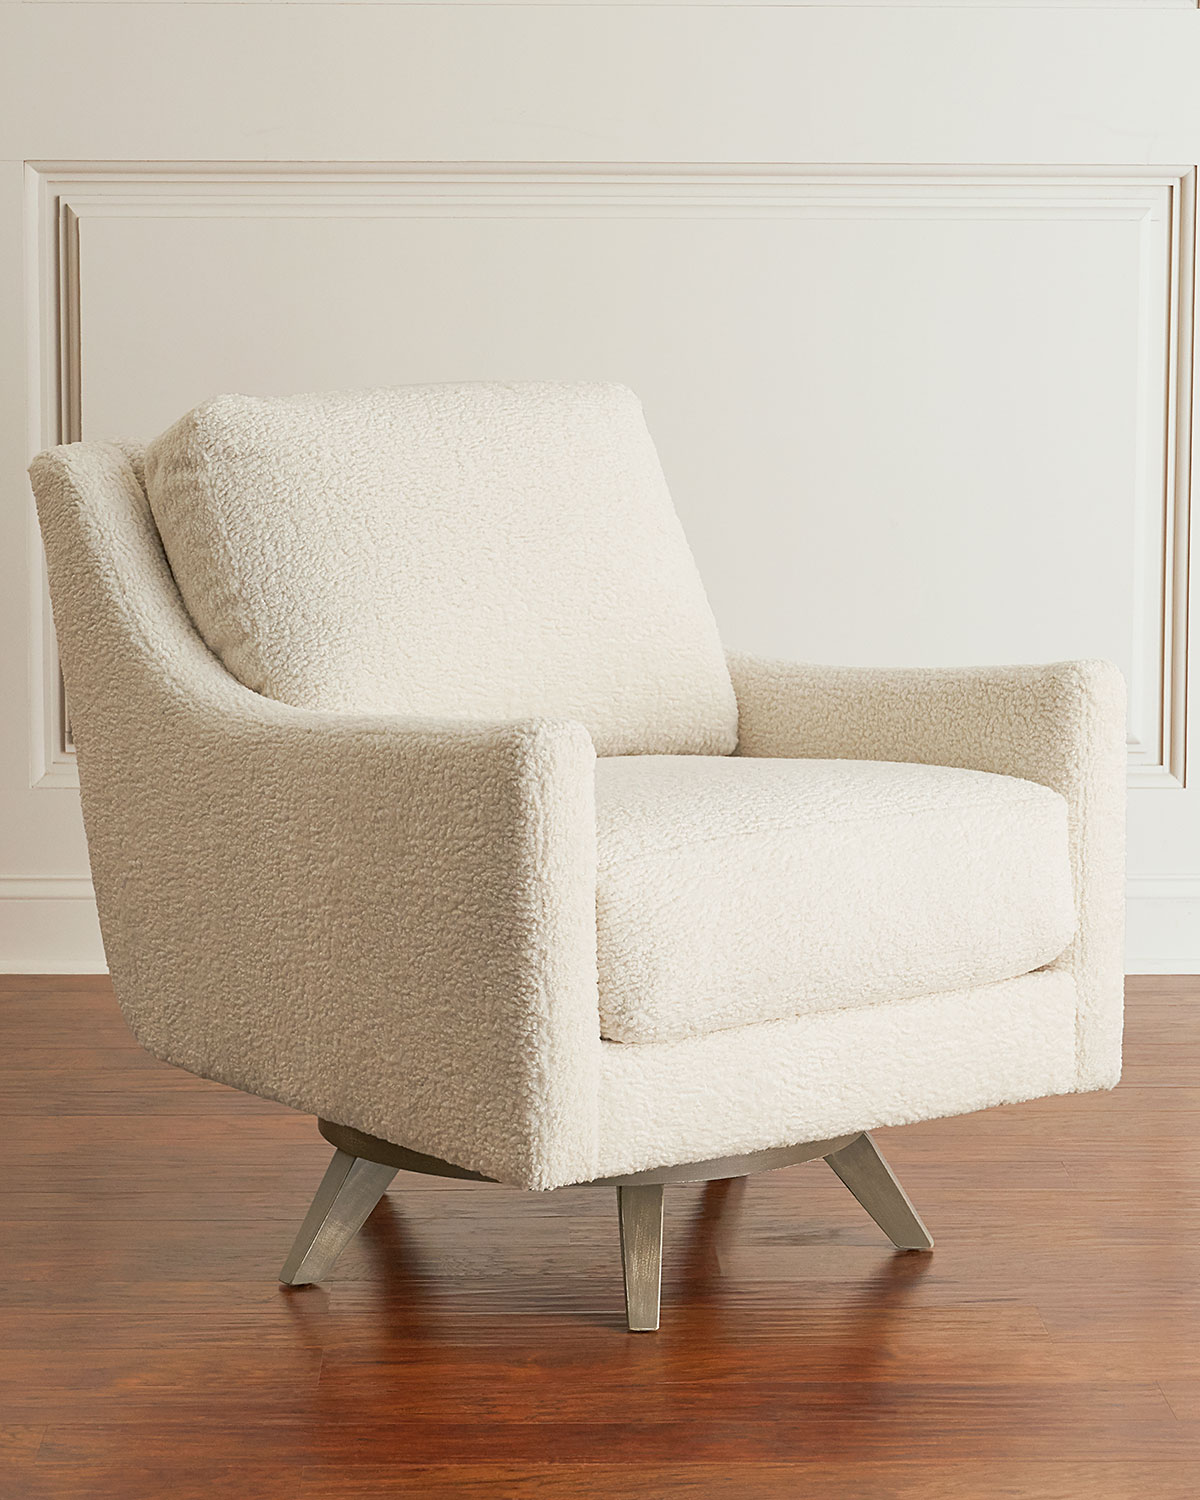 Sam Moore Chairs Lacey Swivel Chair